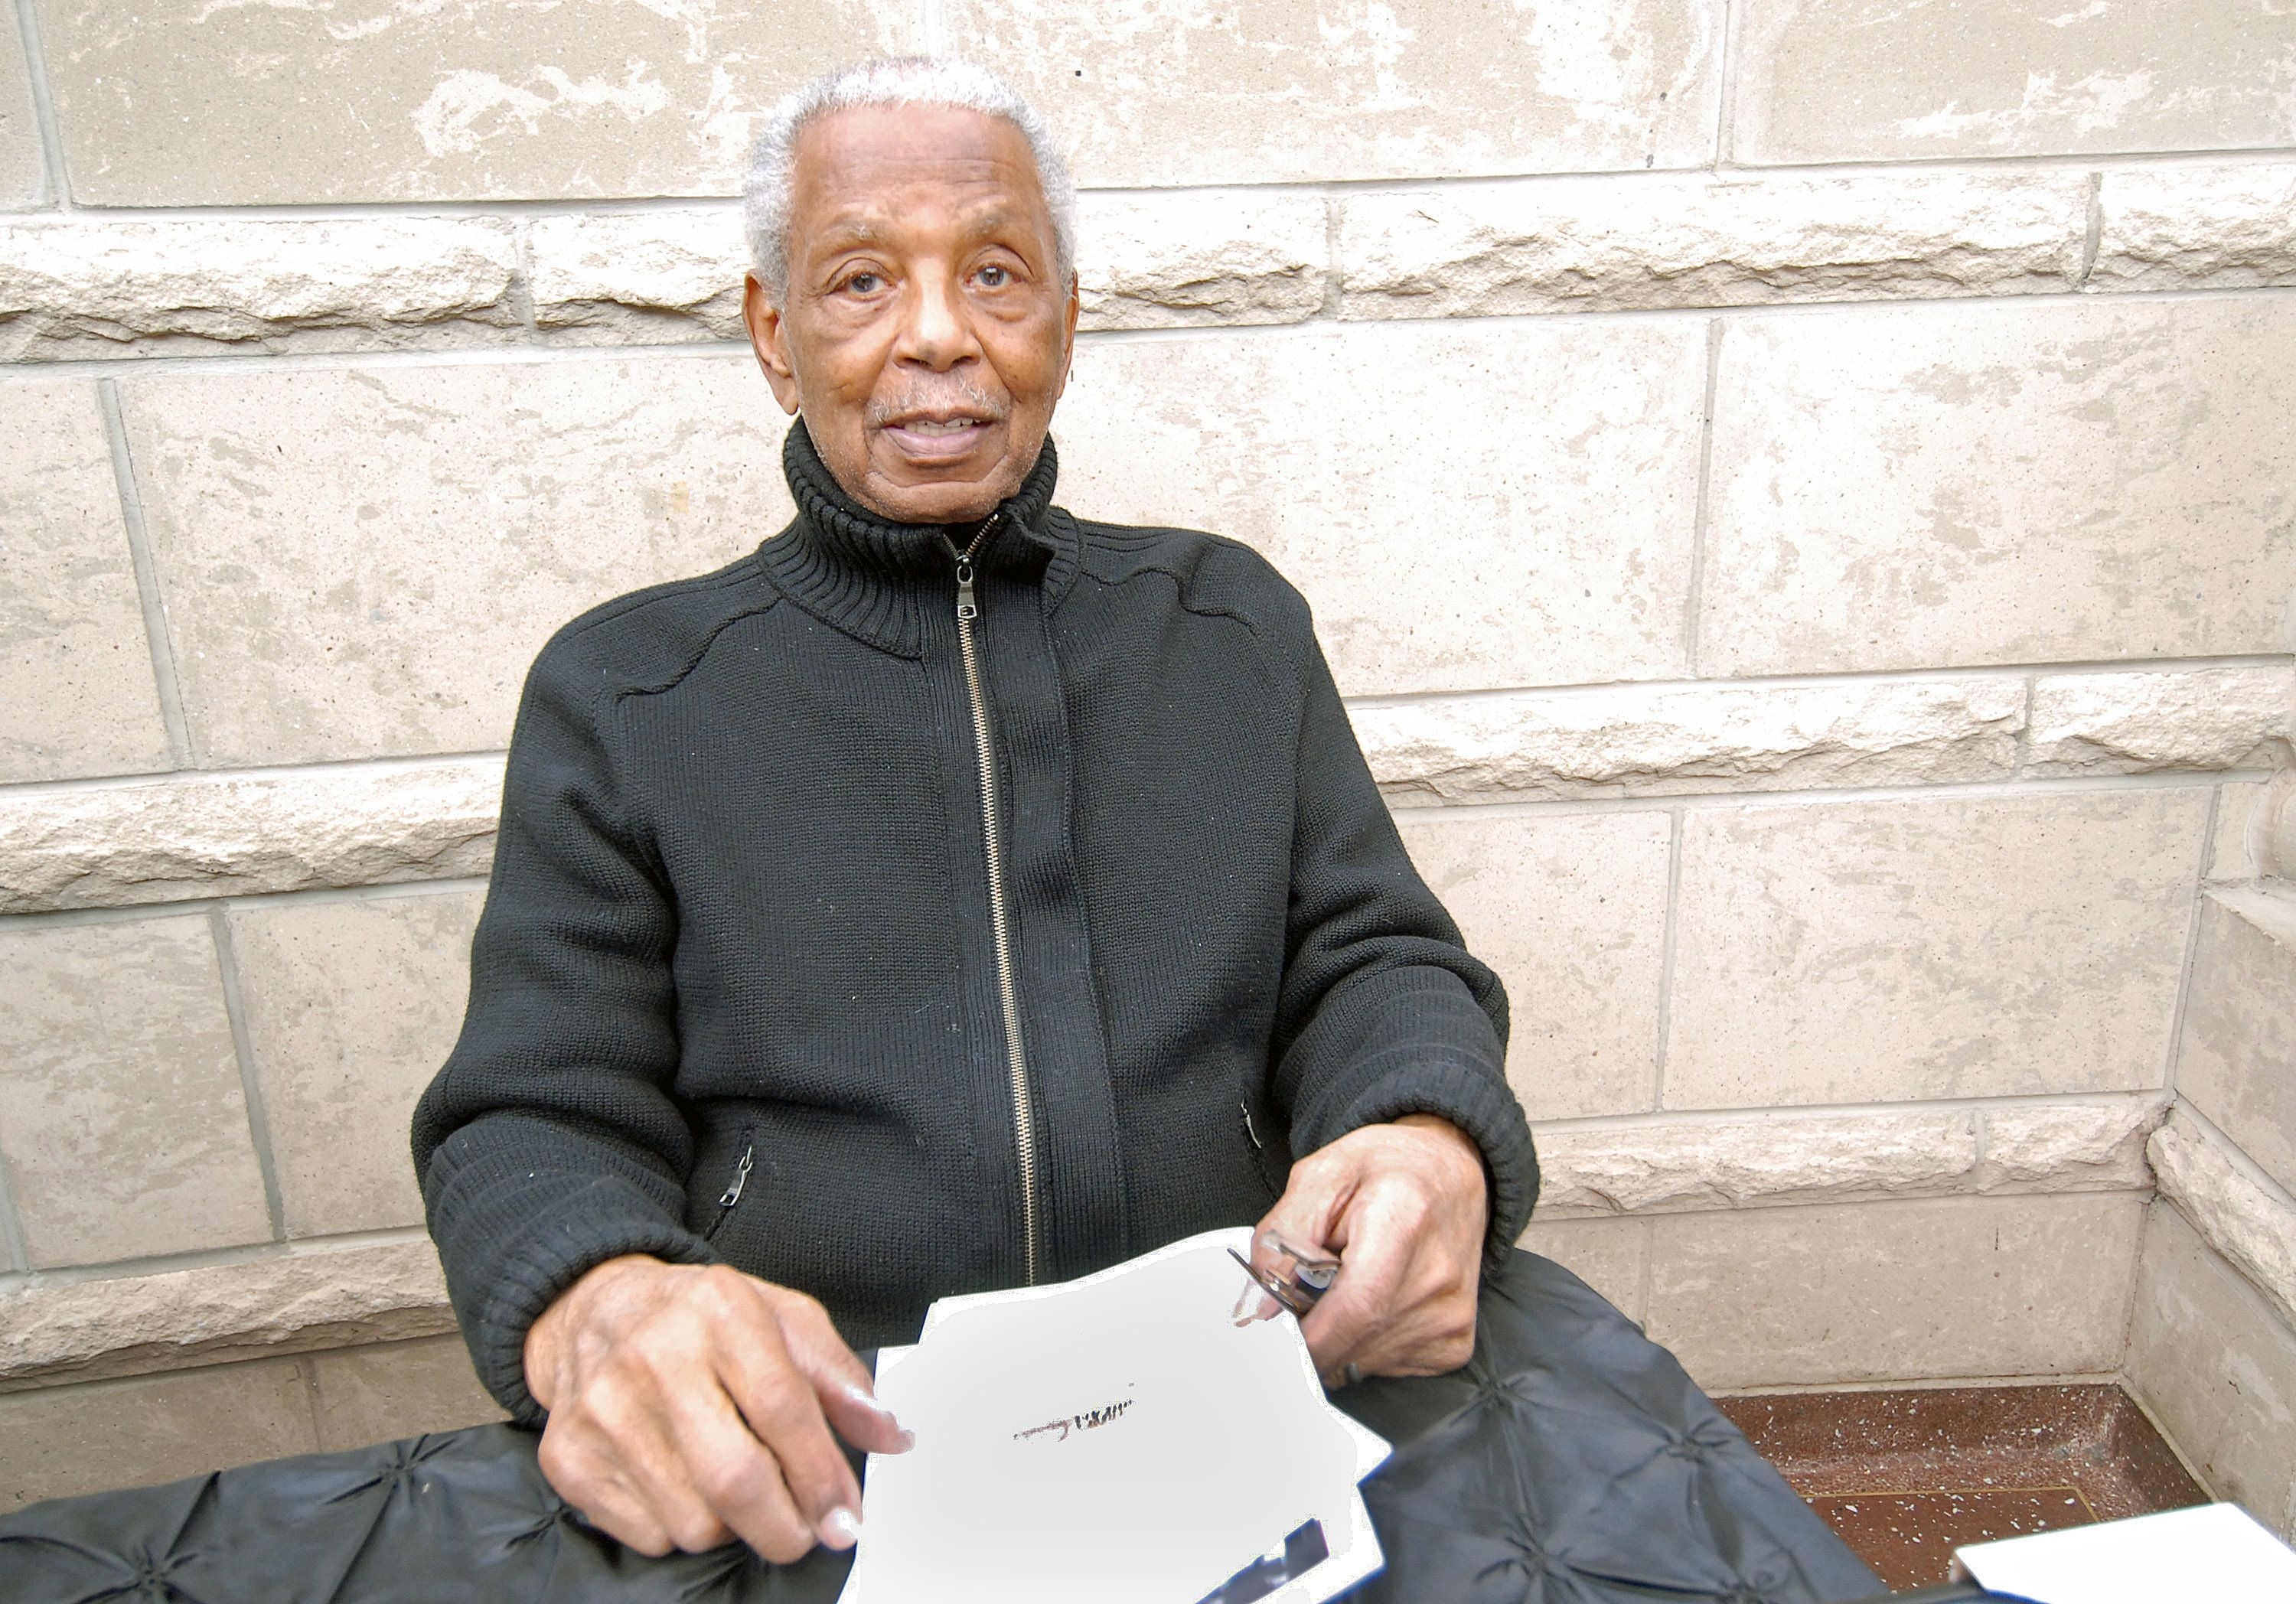 First appointed to the federal bench in the 1960s, U.S. Circuit Judge Damon Keith issued a forceful dissentin a ruling